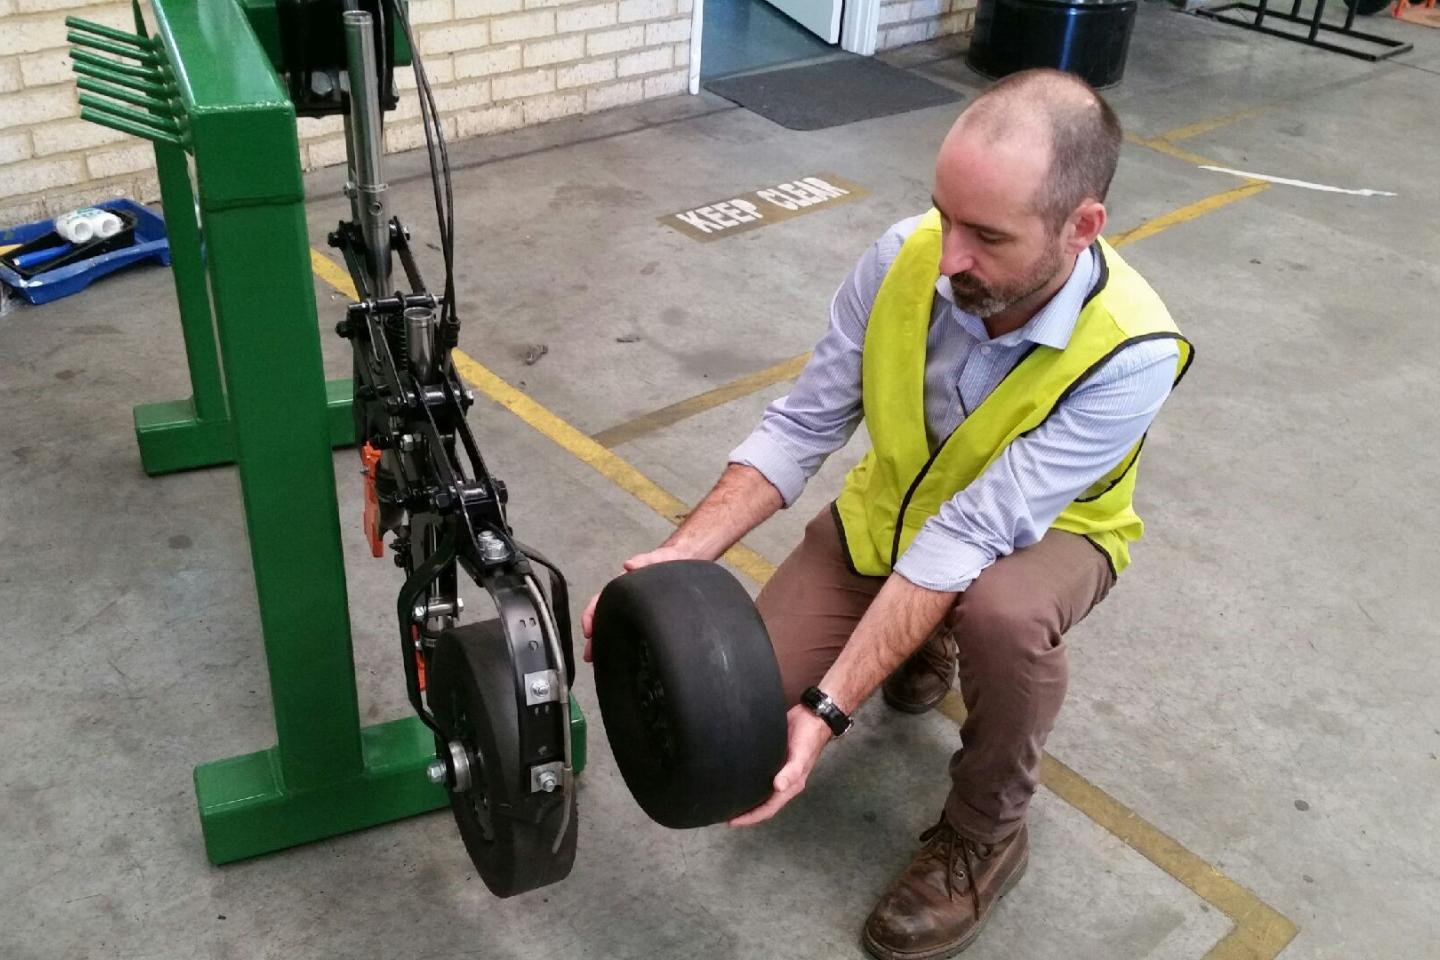 Ausplow engineering manager Carl Vance illustrates the difference between the new 135mm diameter press wheel and the standard diameter press wheel mounted on a DBS module.